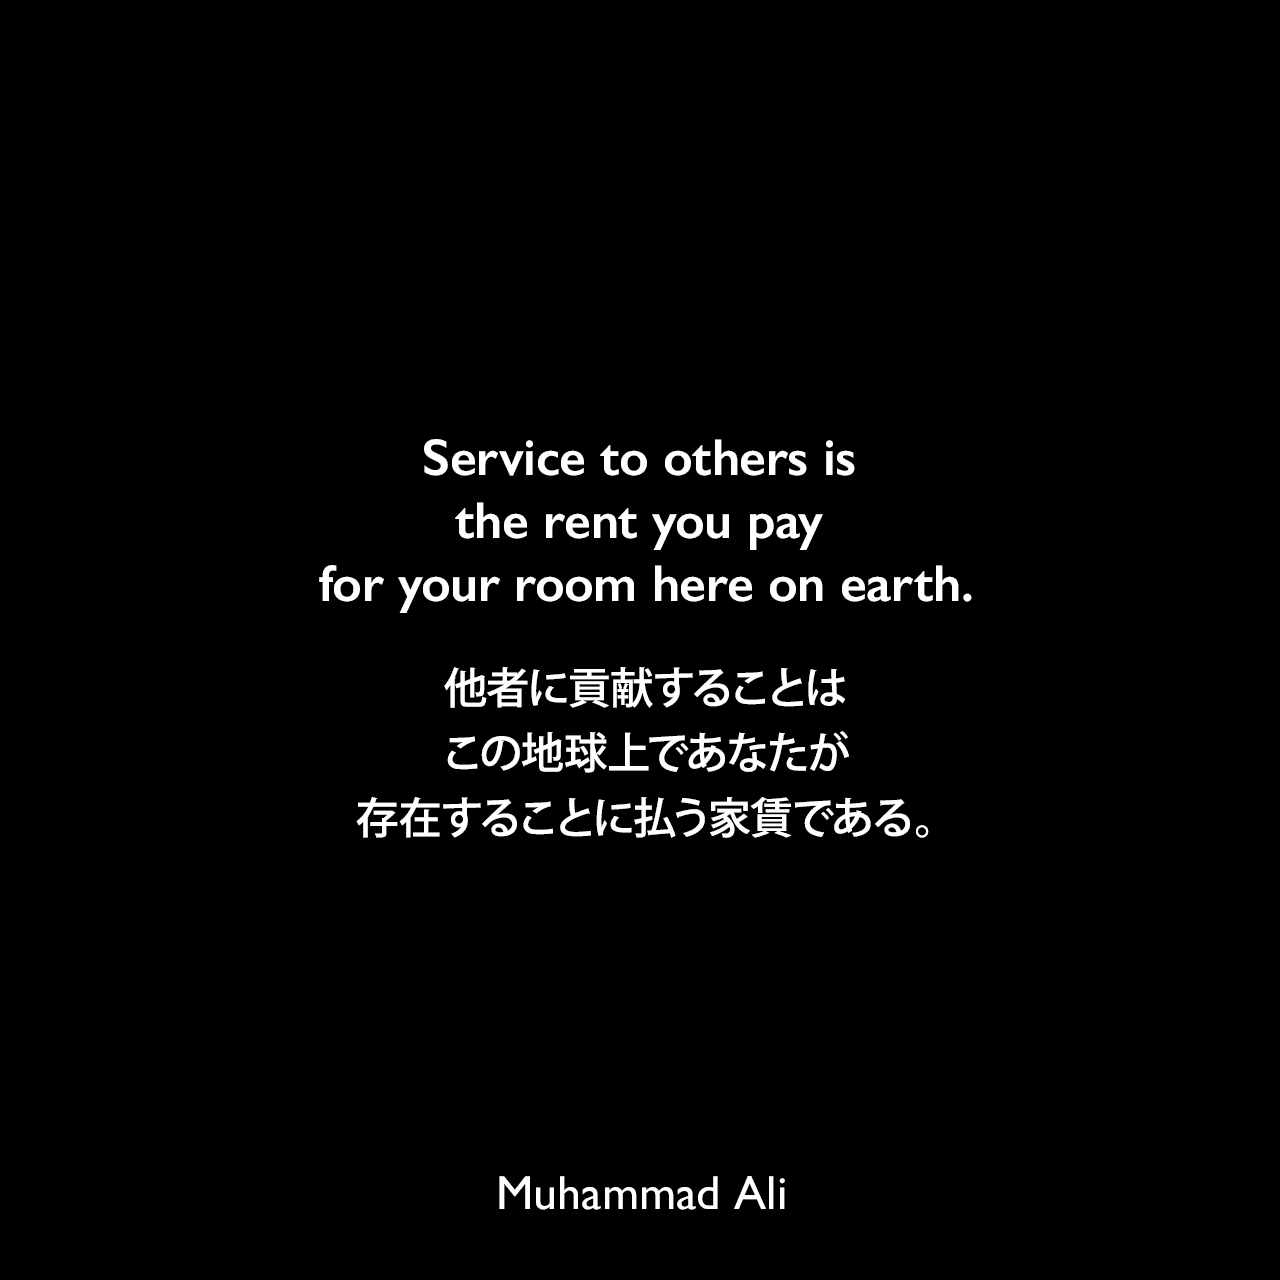 Service to others is the rent you pay for your room here on earth.他者に貢献することは、この地球上であなたが存在することに払う家賃である。Muhammad Ali